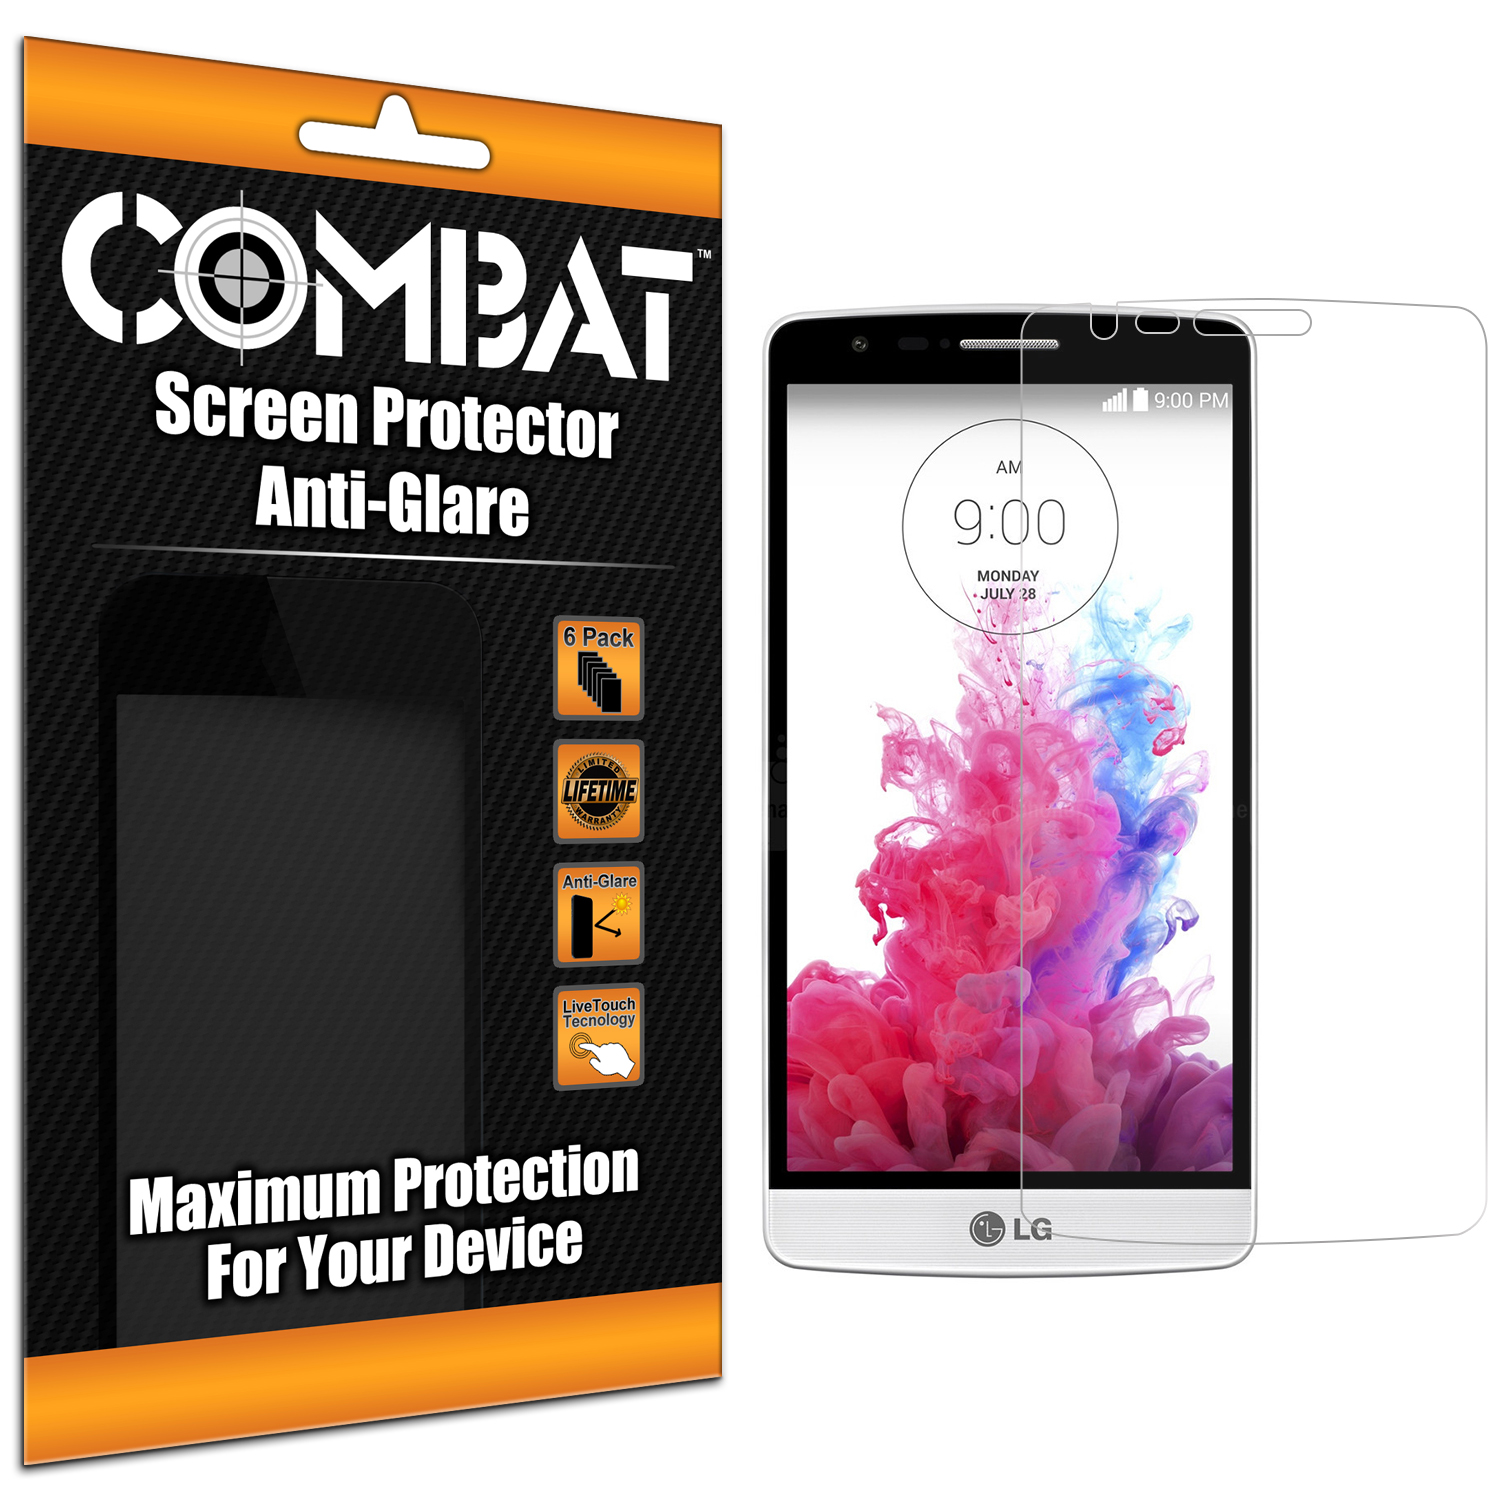 LG G3 Vigor D725 G3s Combat 6 Pack Anti-Glare Matte Screen Protector